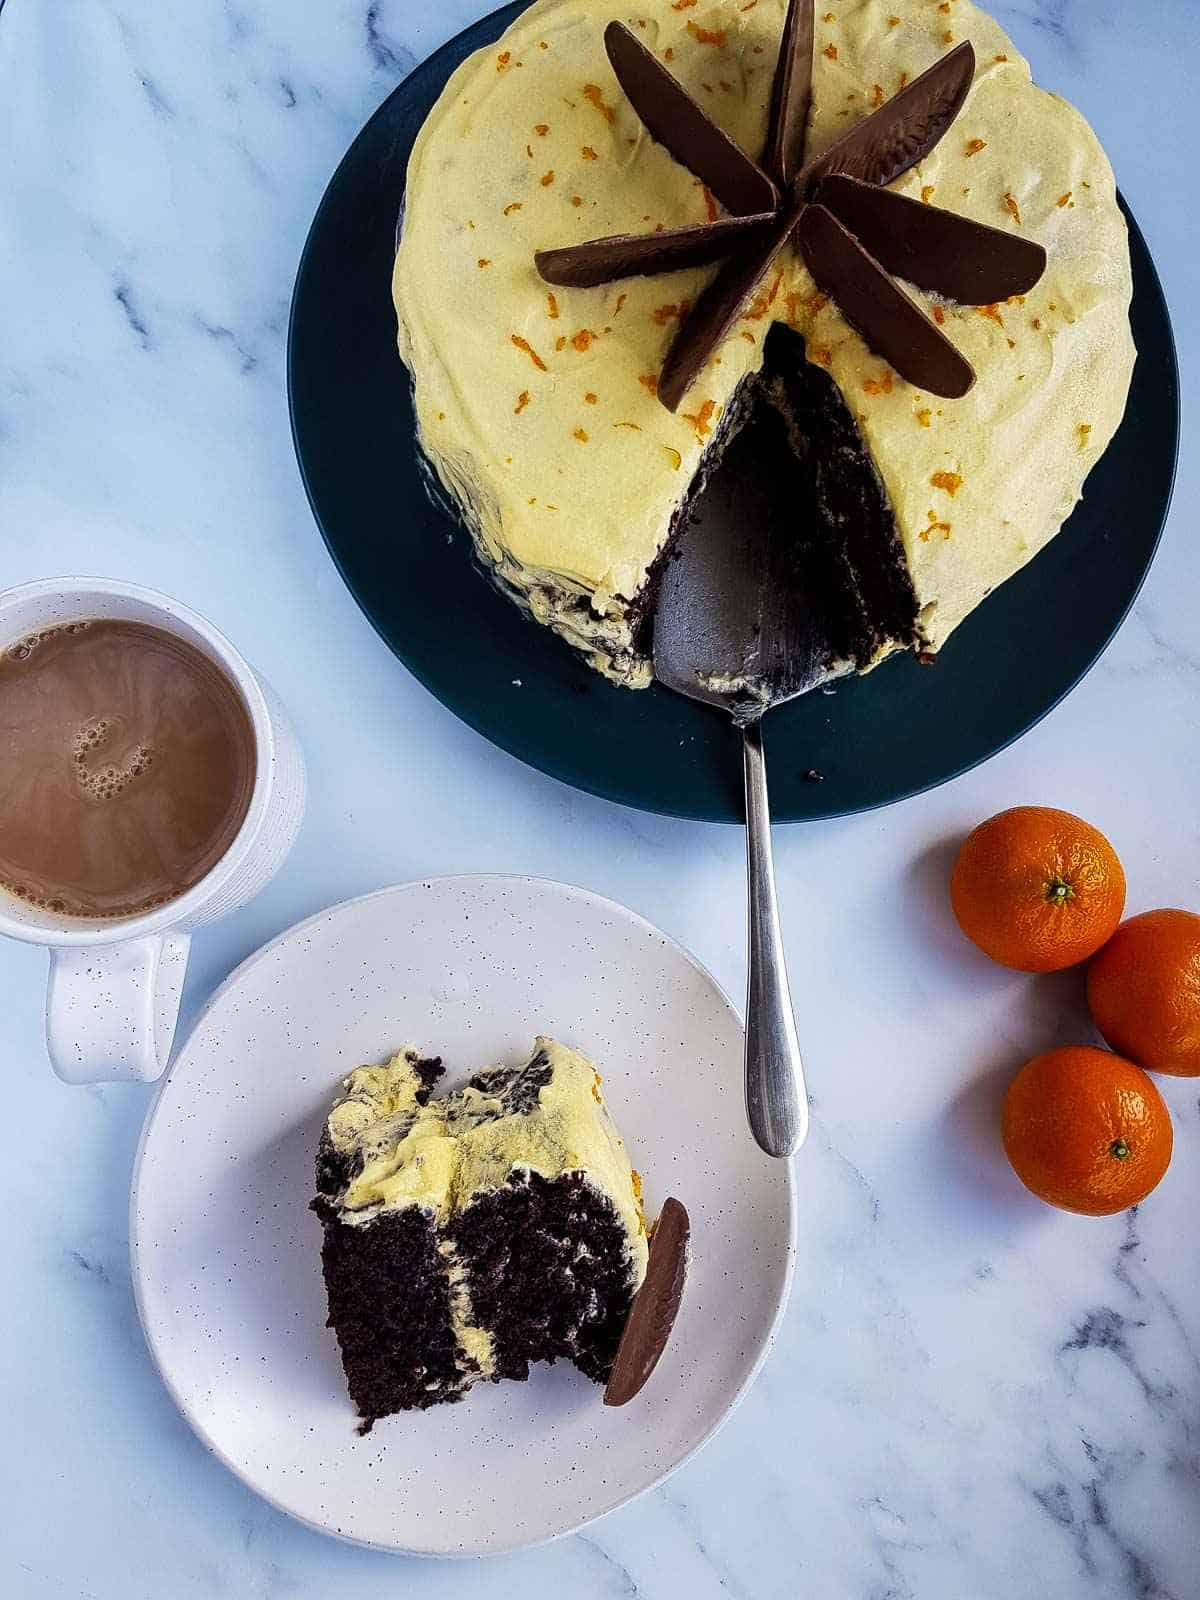 A chocolate orange cake with a slice cut out and placed on a plate.